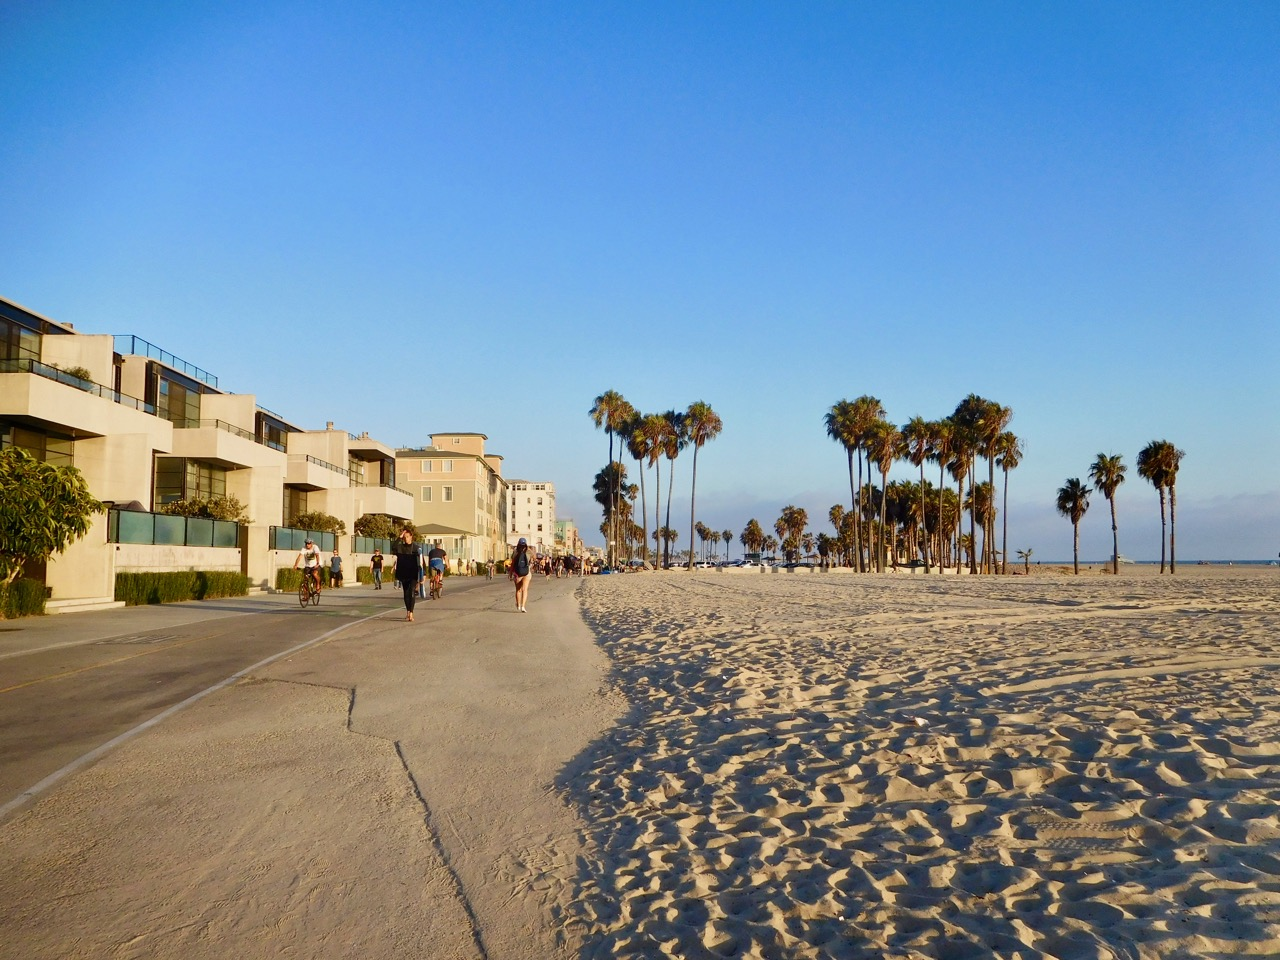 3 Days in L.A. - Venice Beach (3)